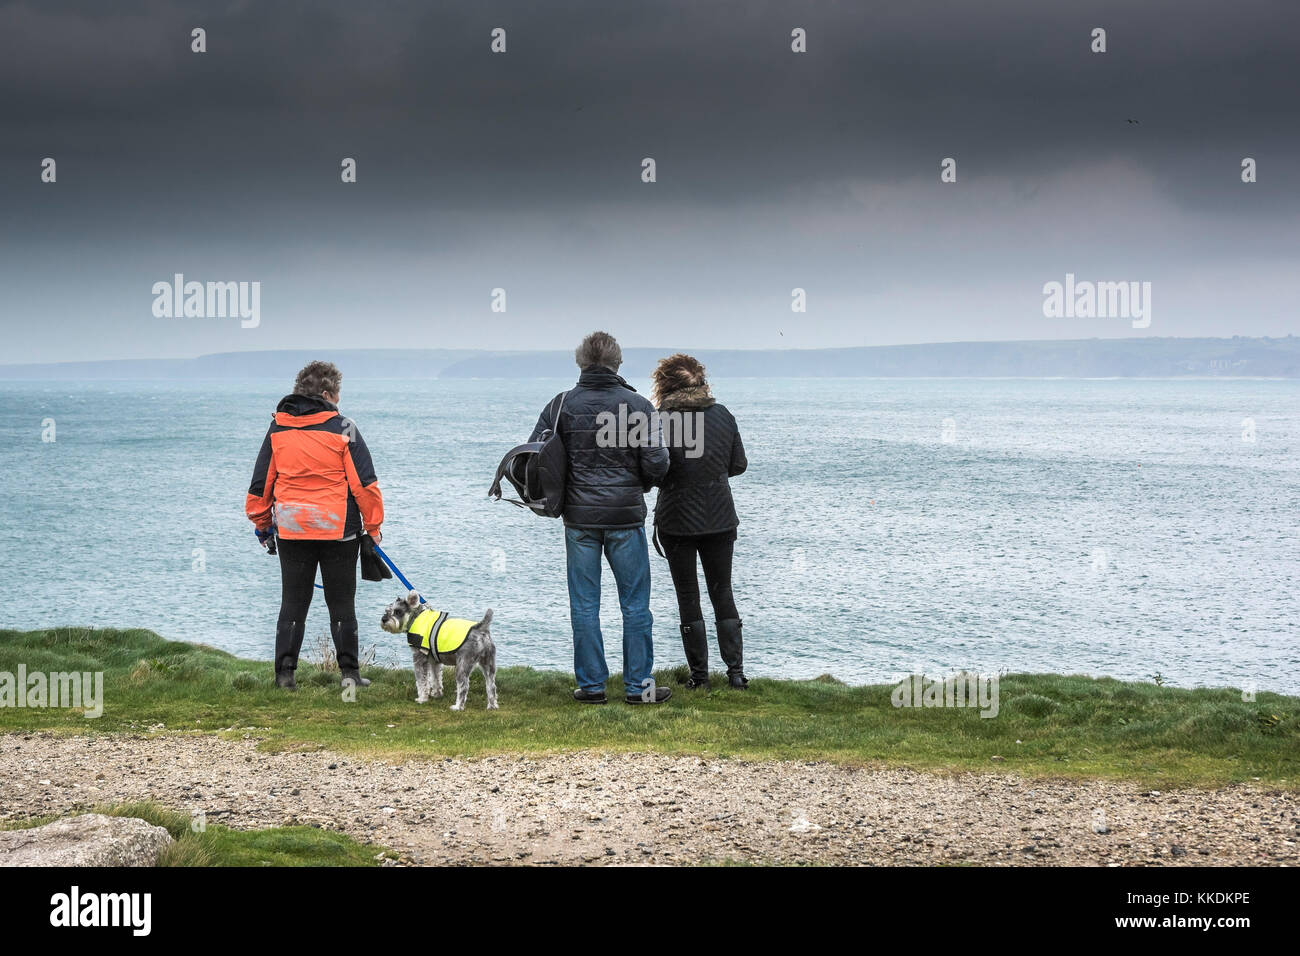 UK weather - People standing on cliffs overlooking the sea as dark rain clouds approach Newquay Cornwall UK. - Stock Image